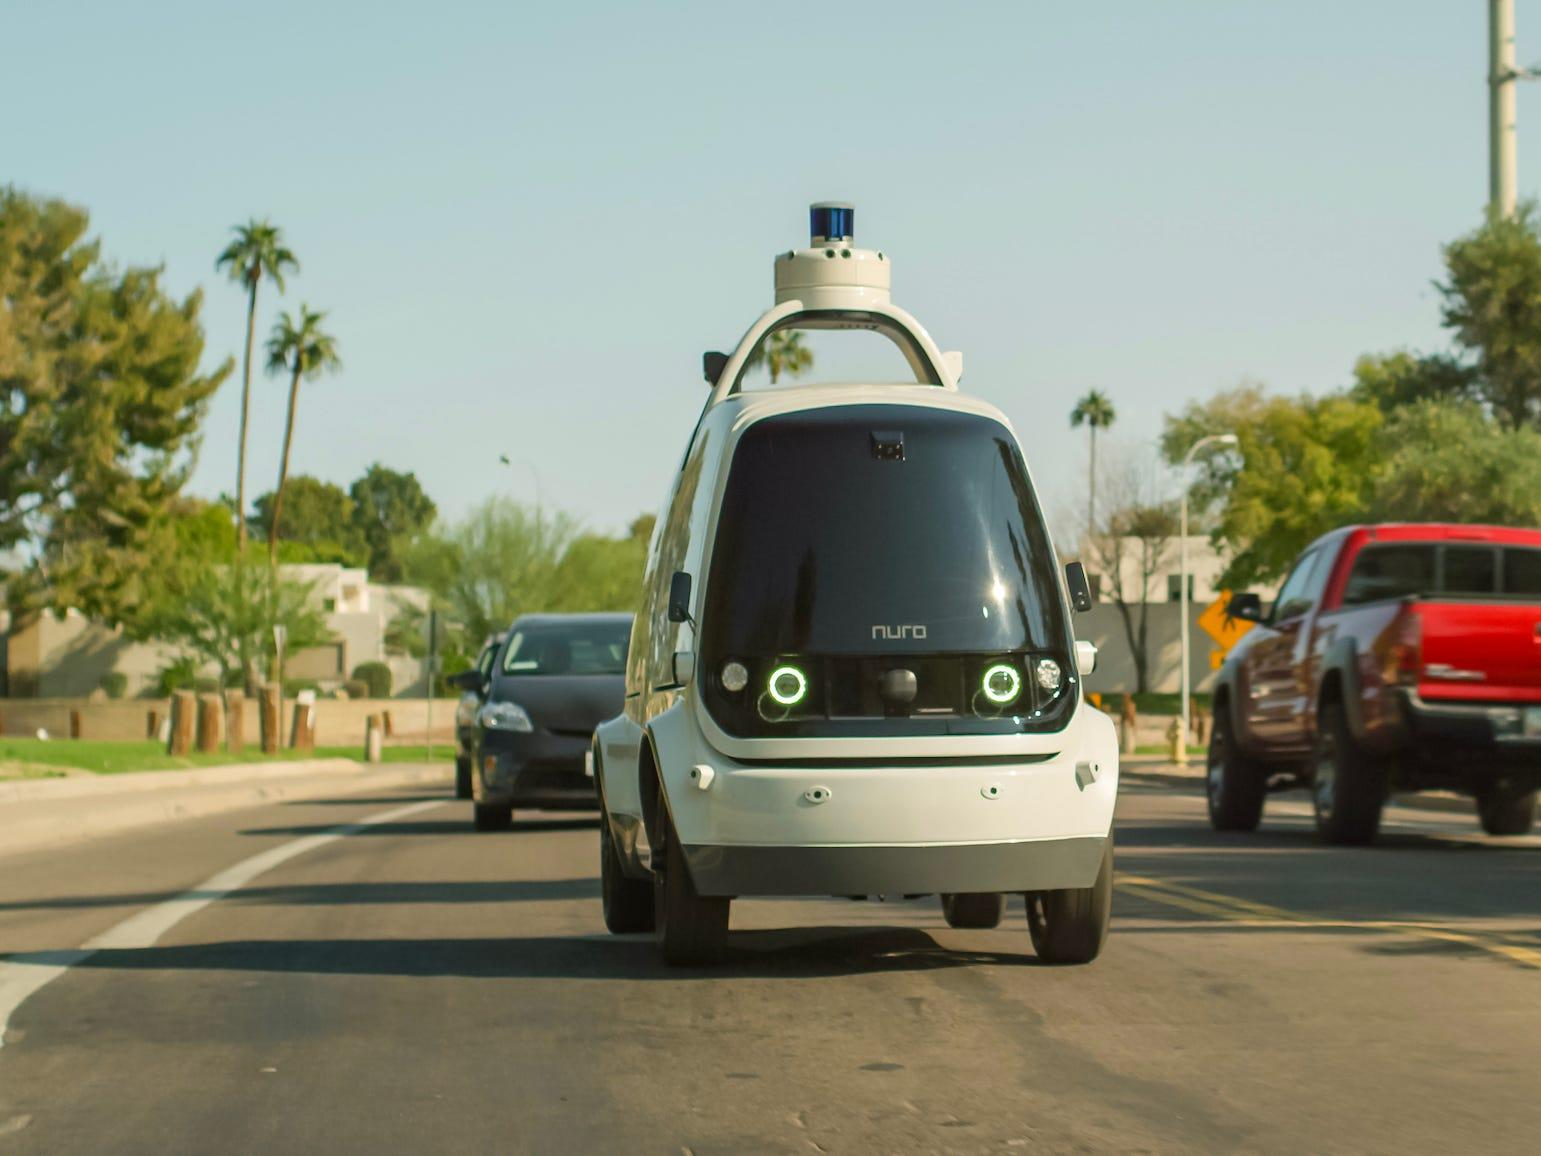 In California, small robot cars deliver pizza, groceries and medicine for the first time in 2021